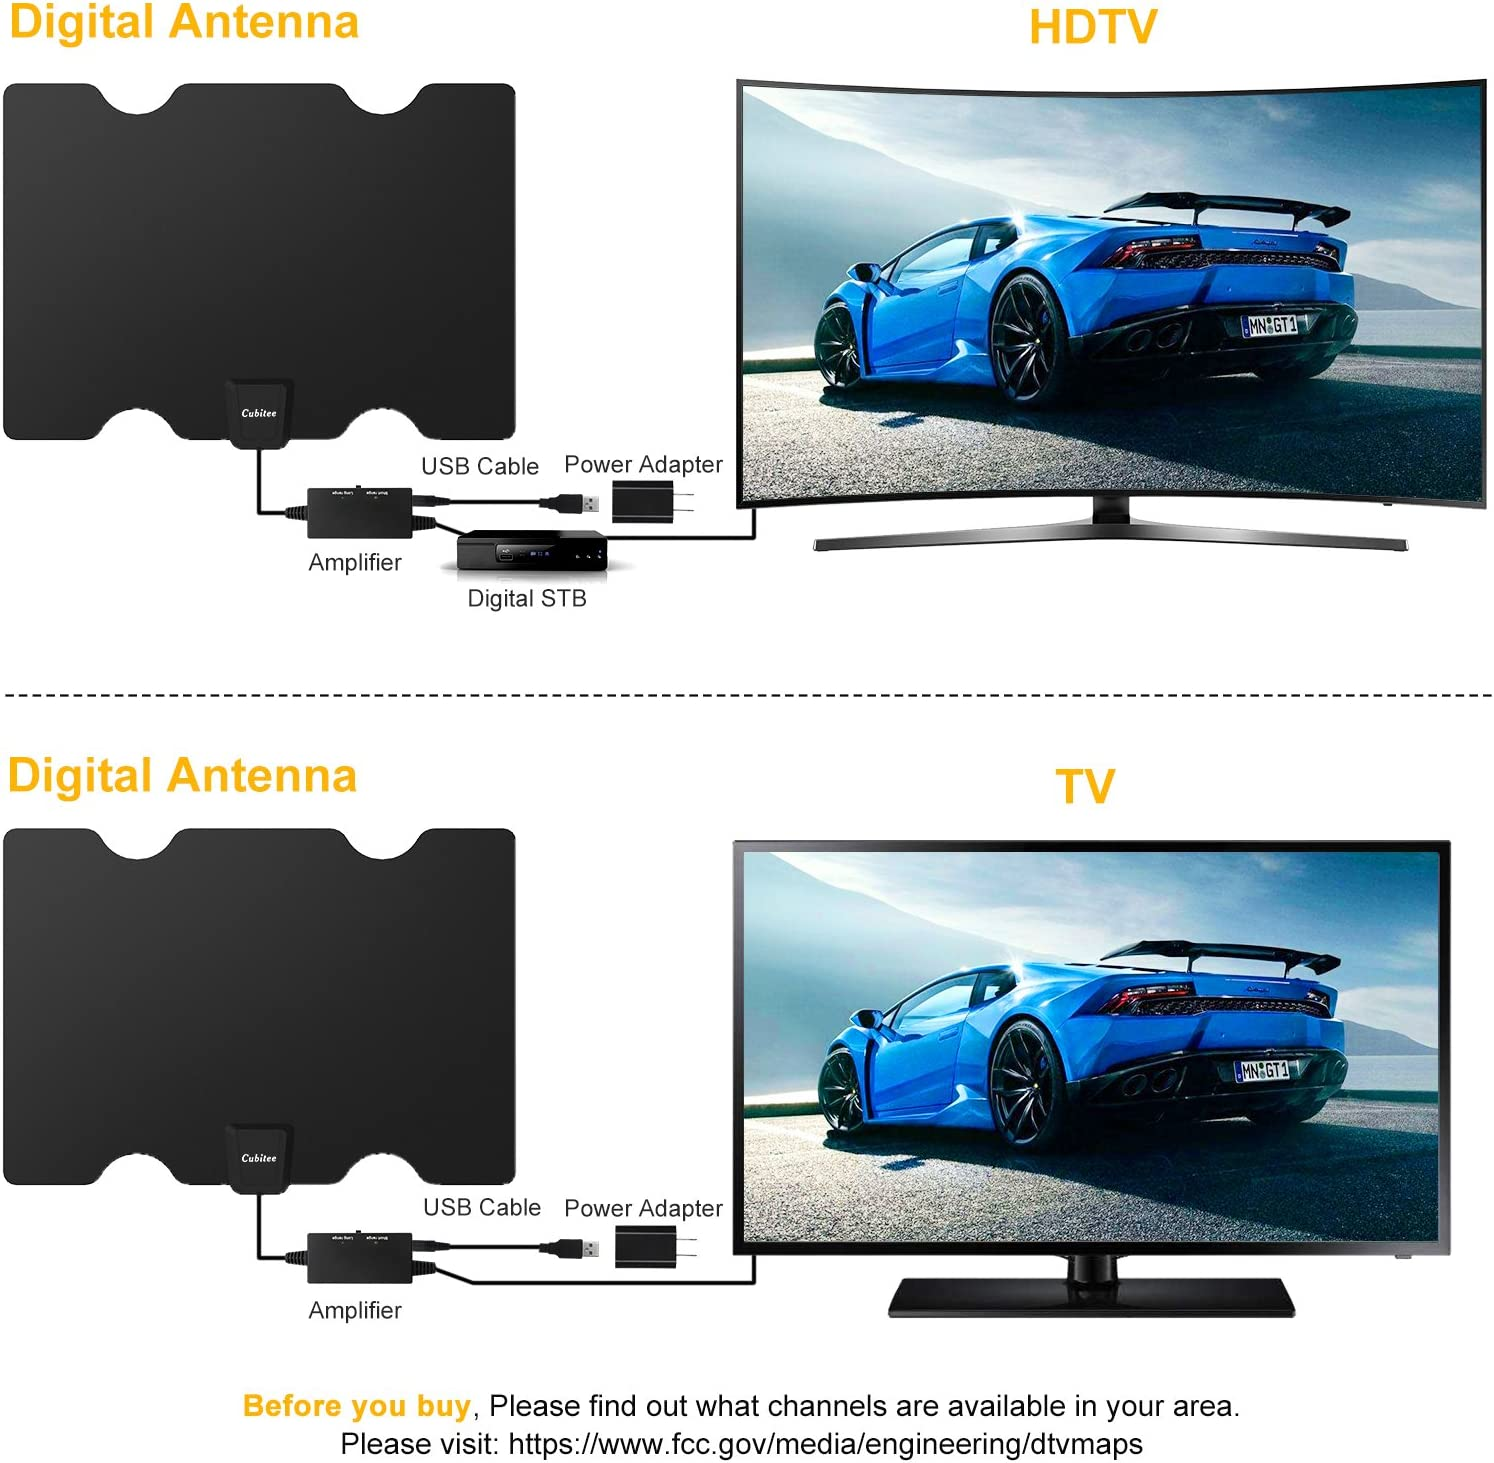 2020 Updated Amplified HD Digital TV Antenna 50-150 Miles Long Range Indoor Signal Amplifier Booster with 16.4ft Coax Cable//AC Adapter HDTV Antennas High Definition 1080P 4K for Digital TV//Old TV